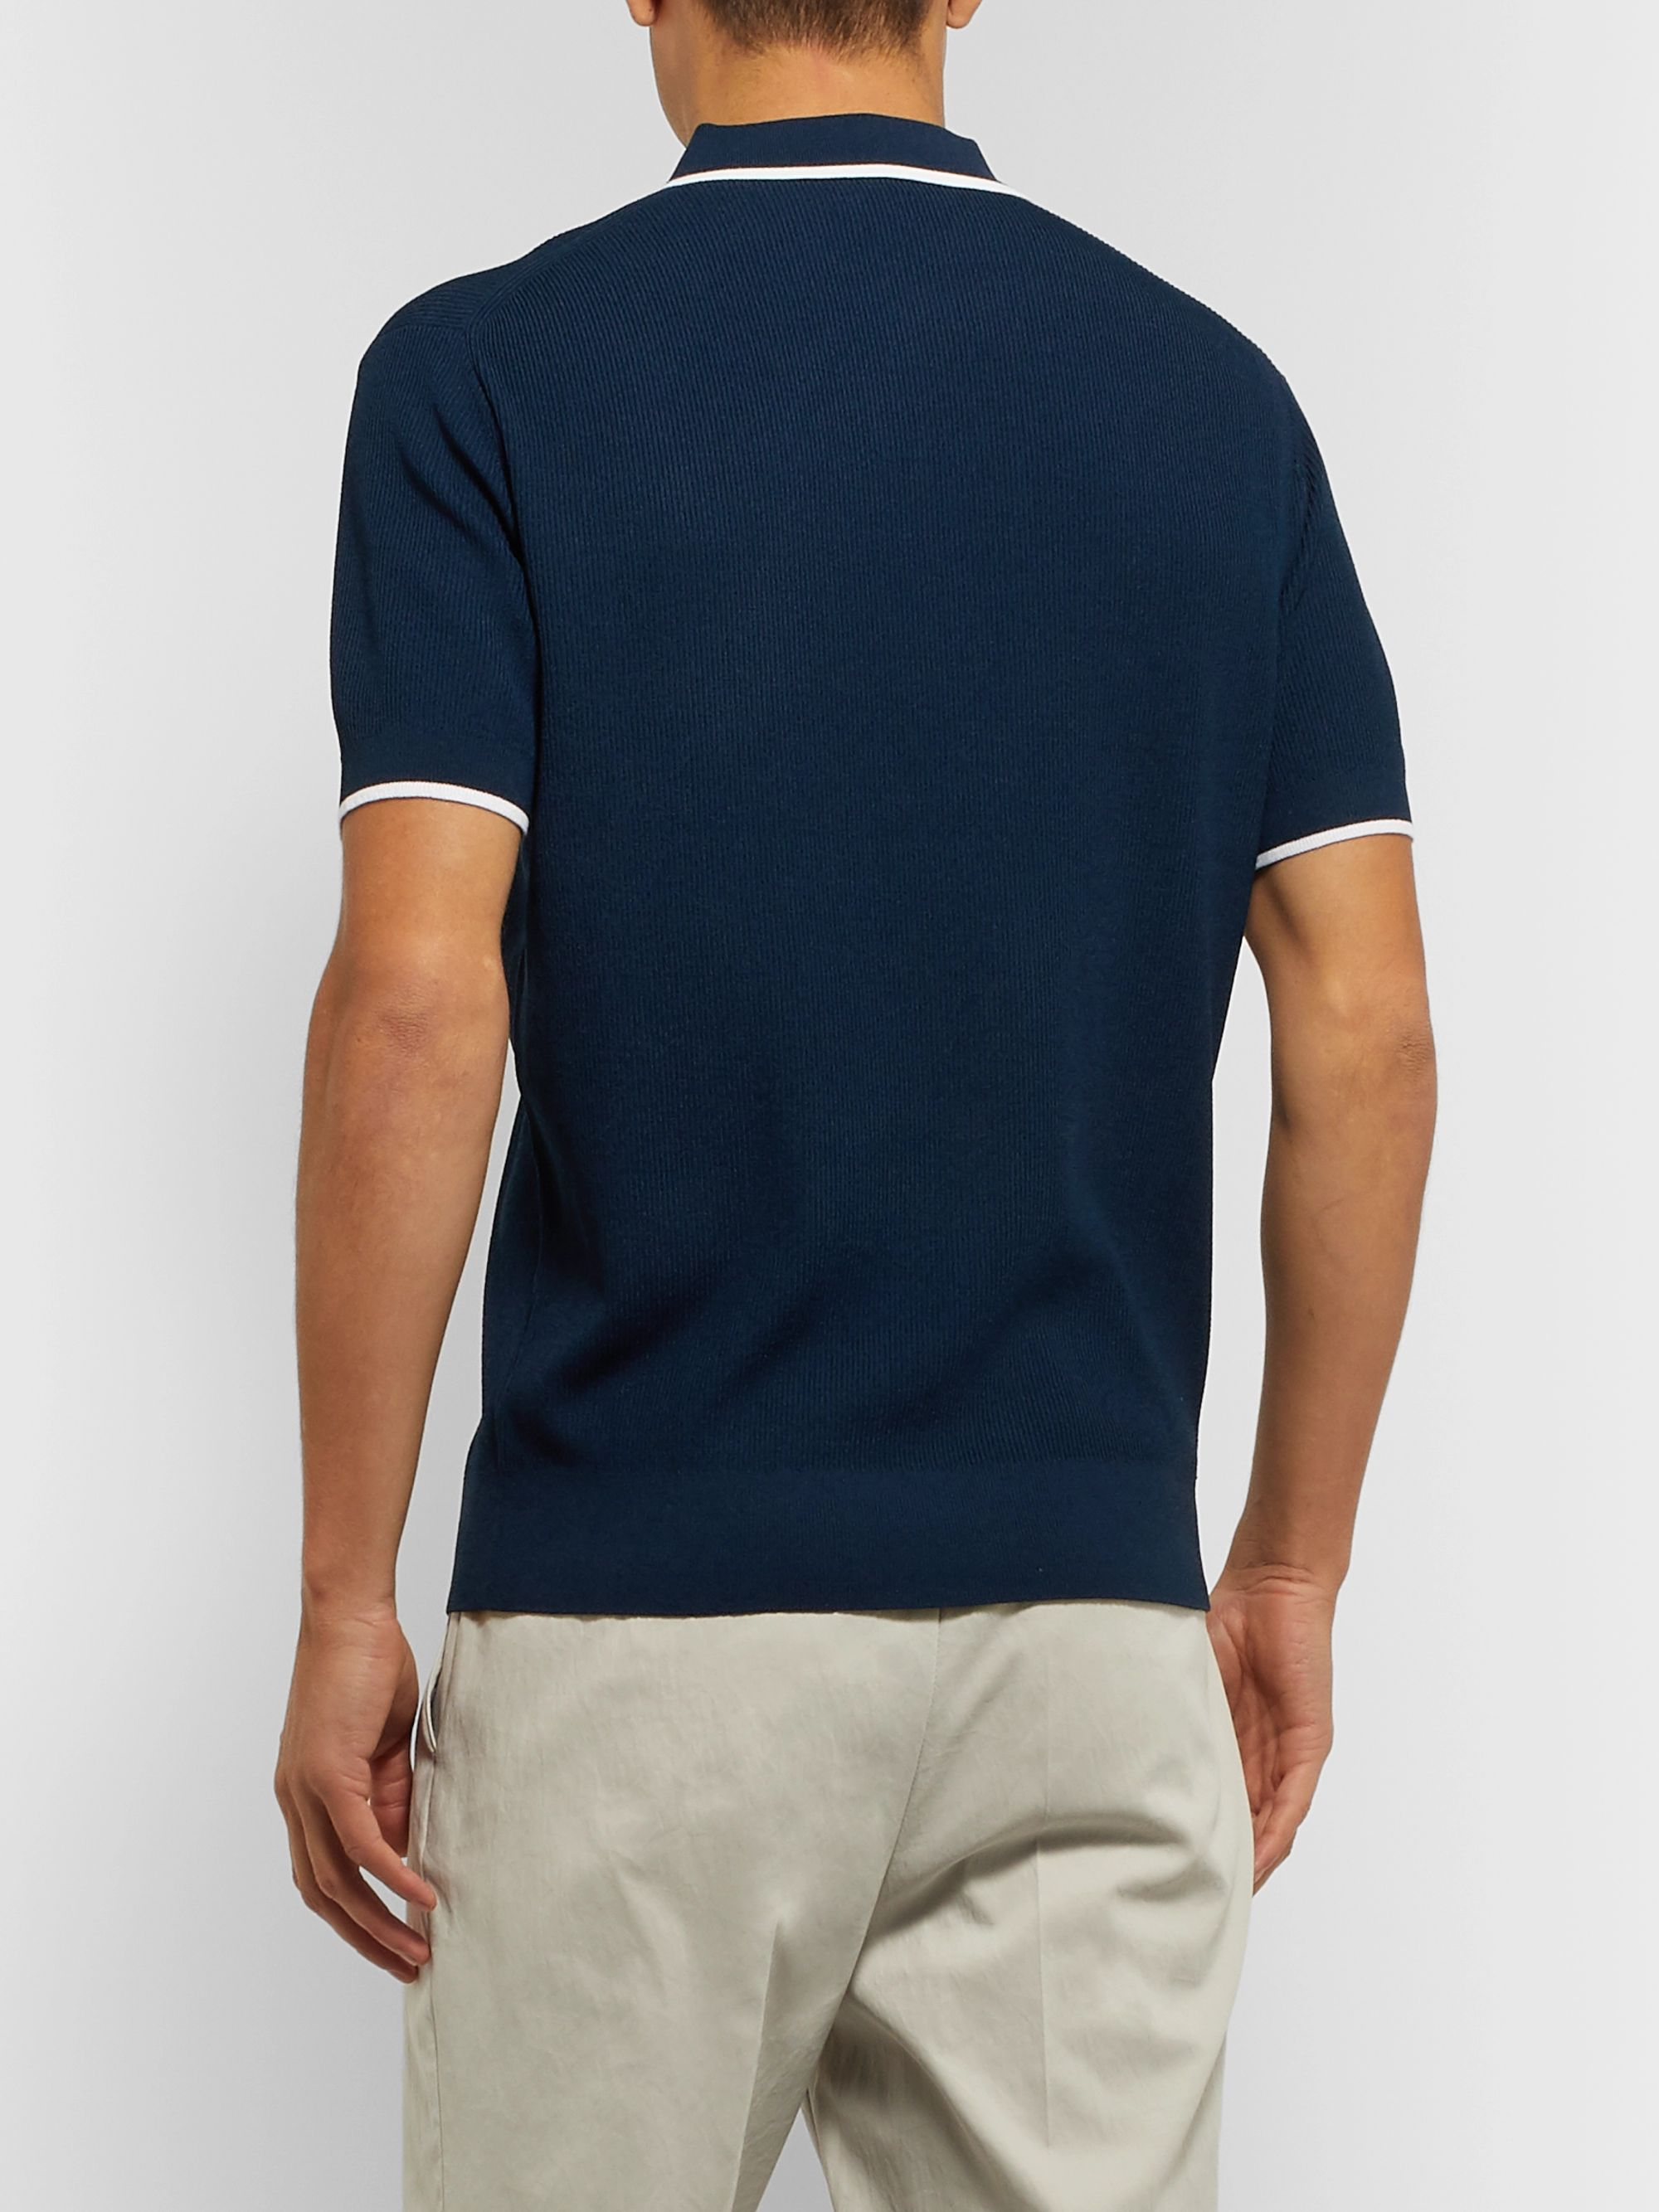 Club Monaco Slim-Fit Contrast-Tipped Ribbed-Knit Polo Shirt